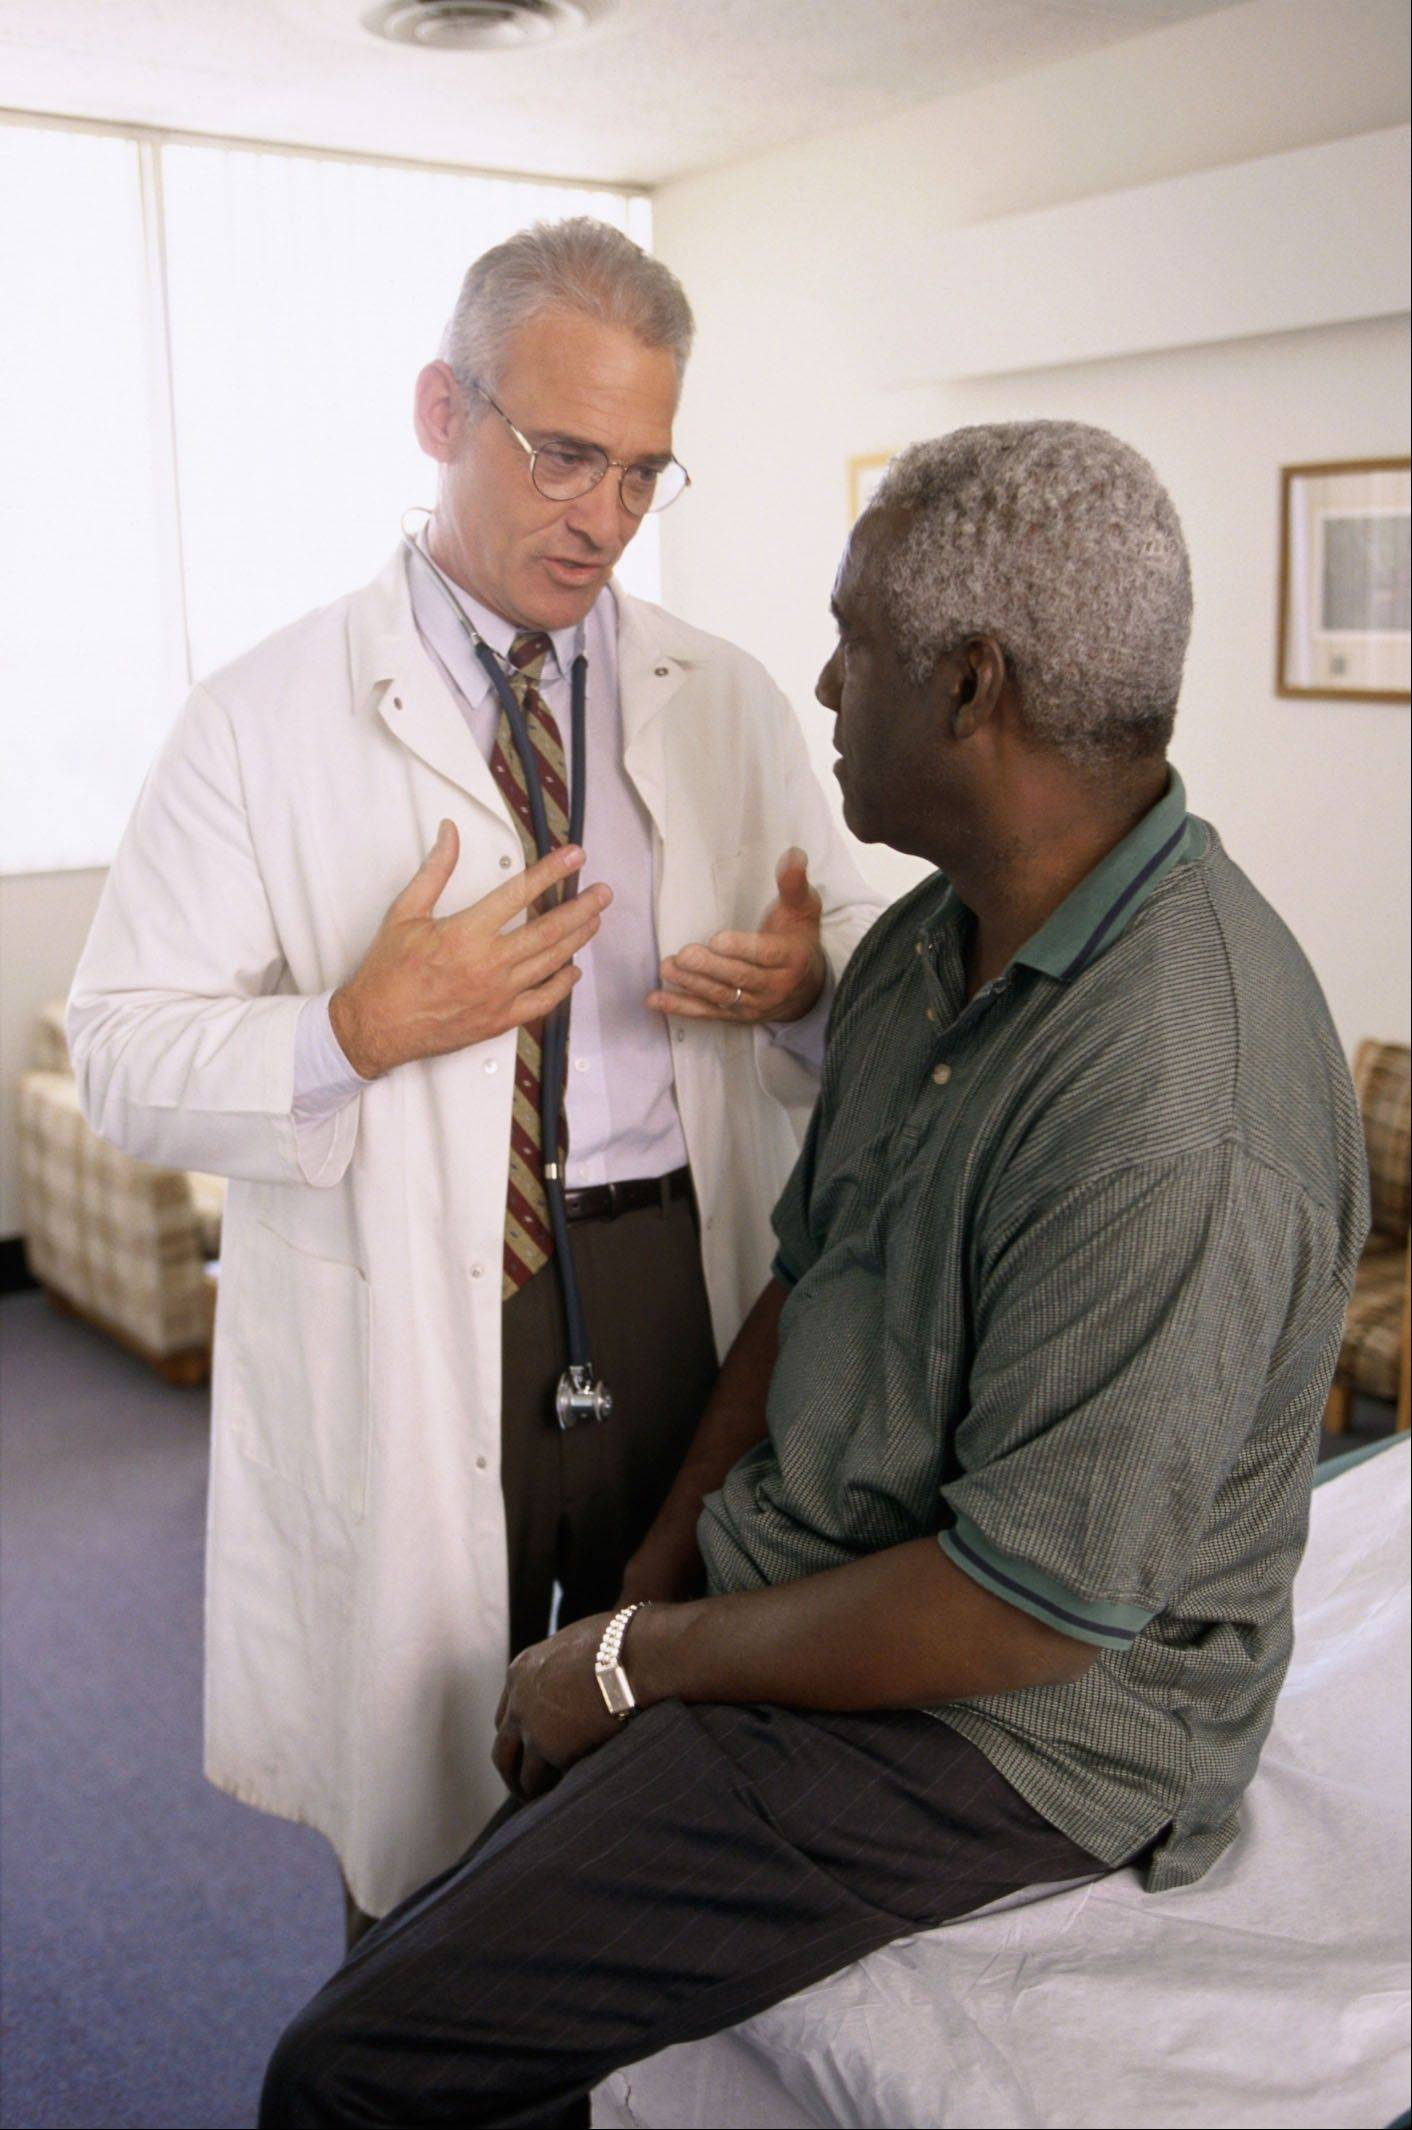 Many men are reluctant to get regular medical checkups